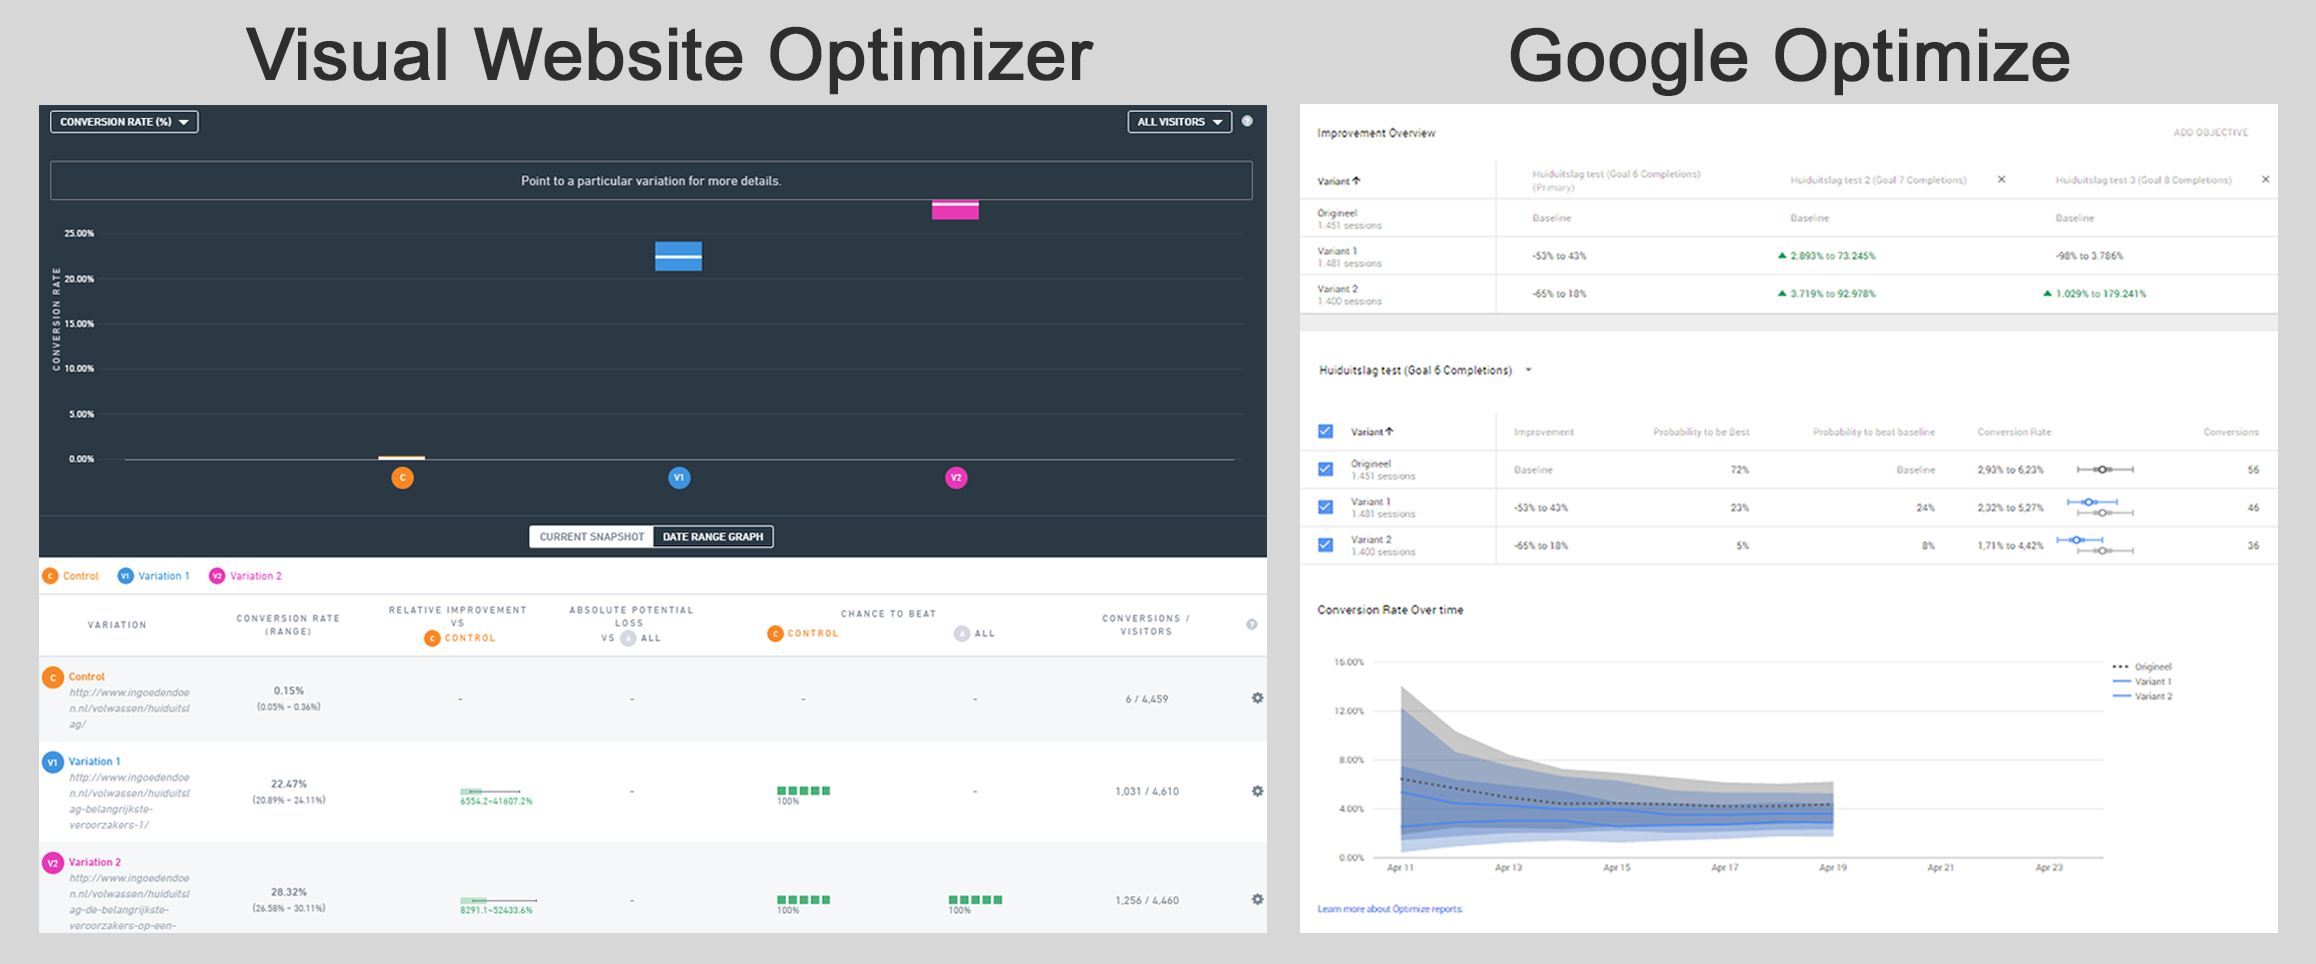 Visual Website Optimizer vs Google Optimize